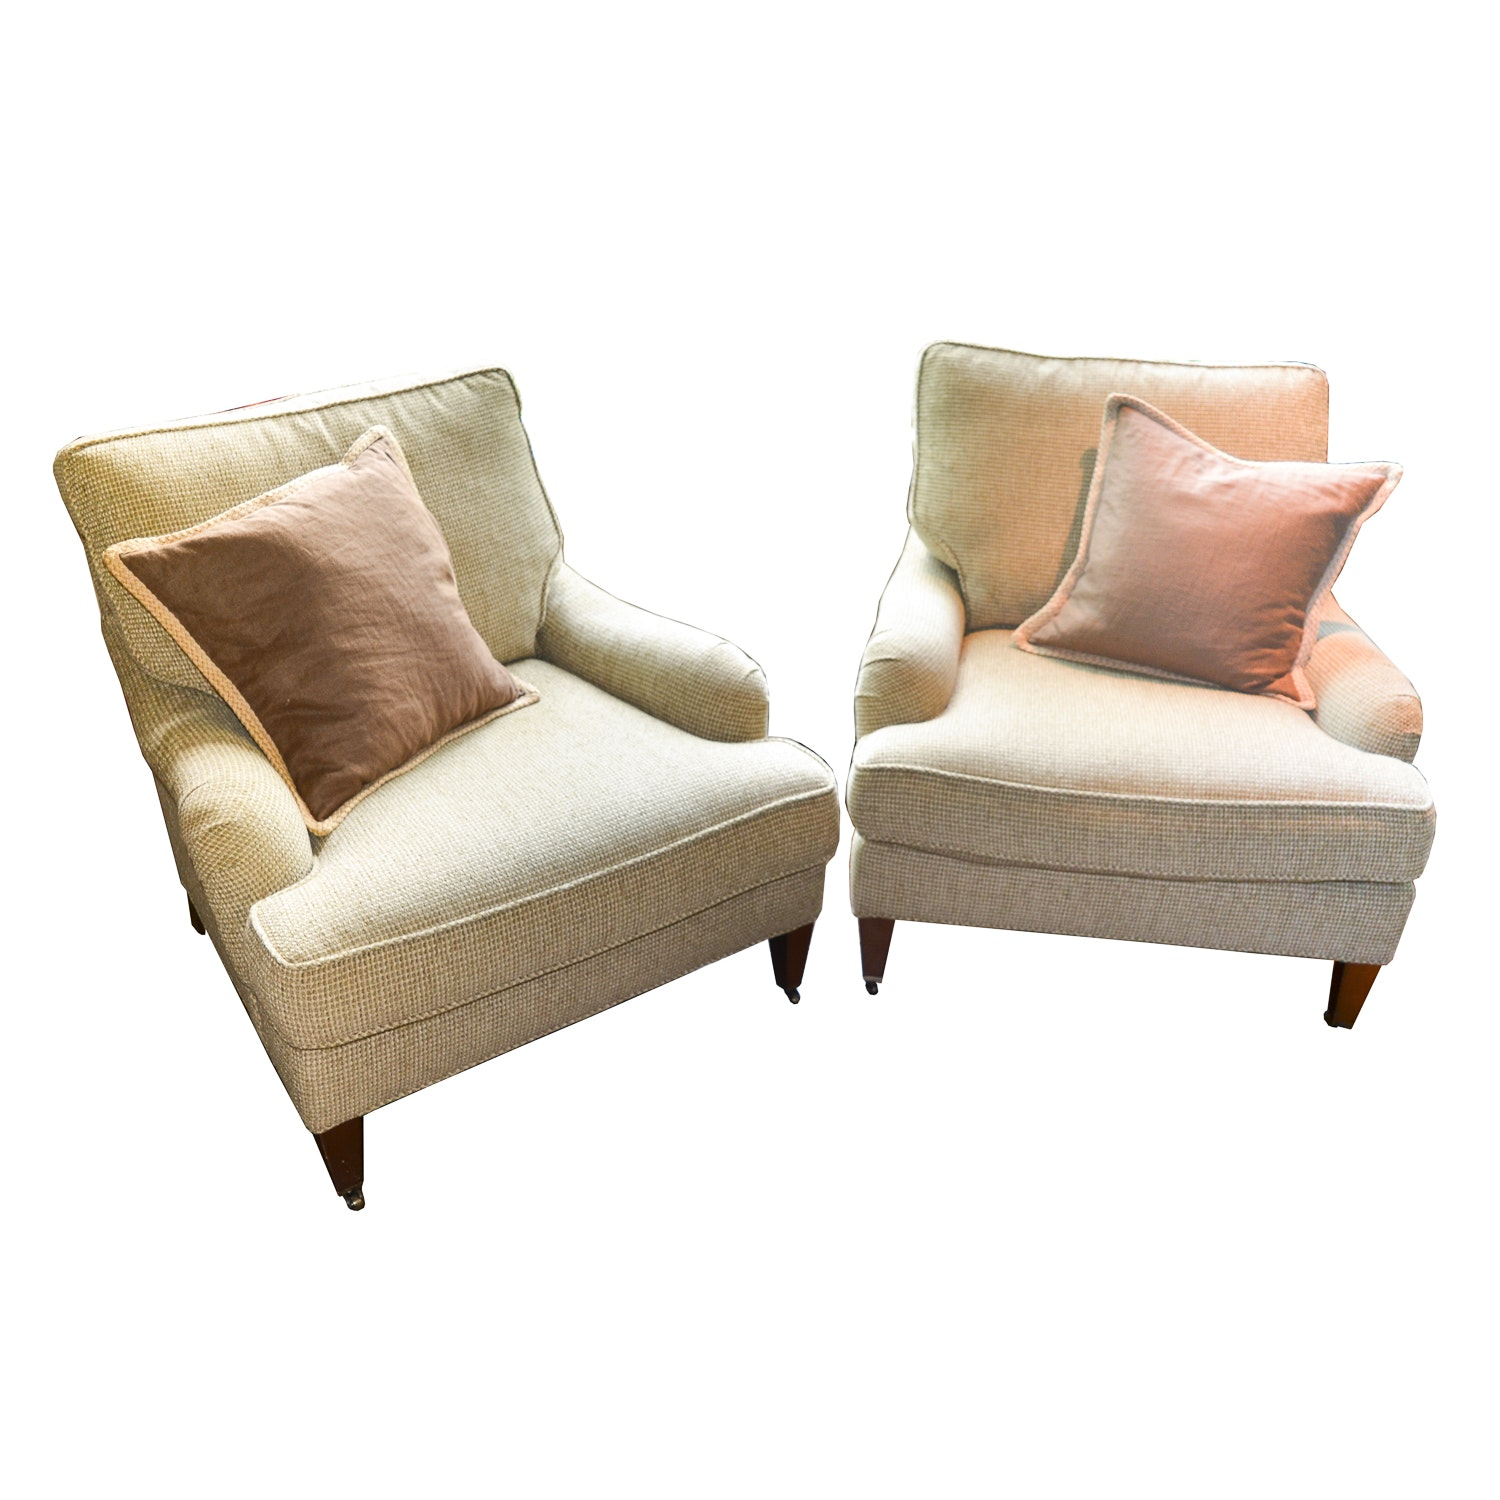 Pair Of Upholstered Club Chairs By Lee Industries ...